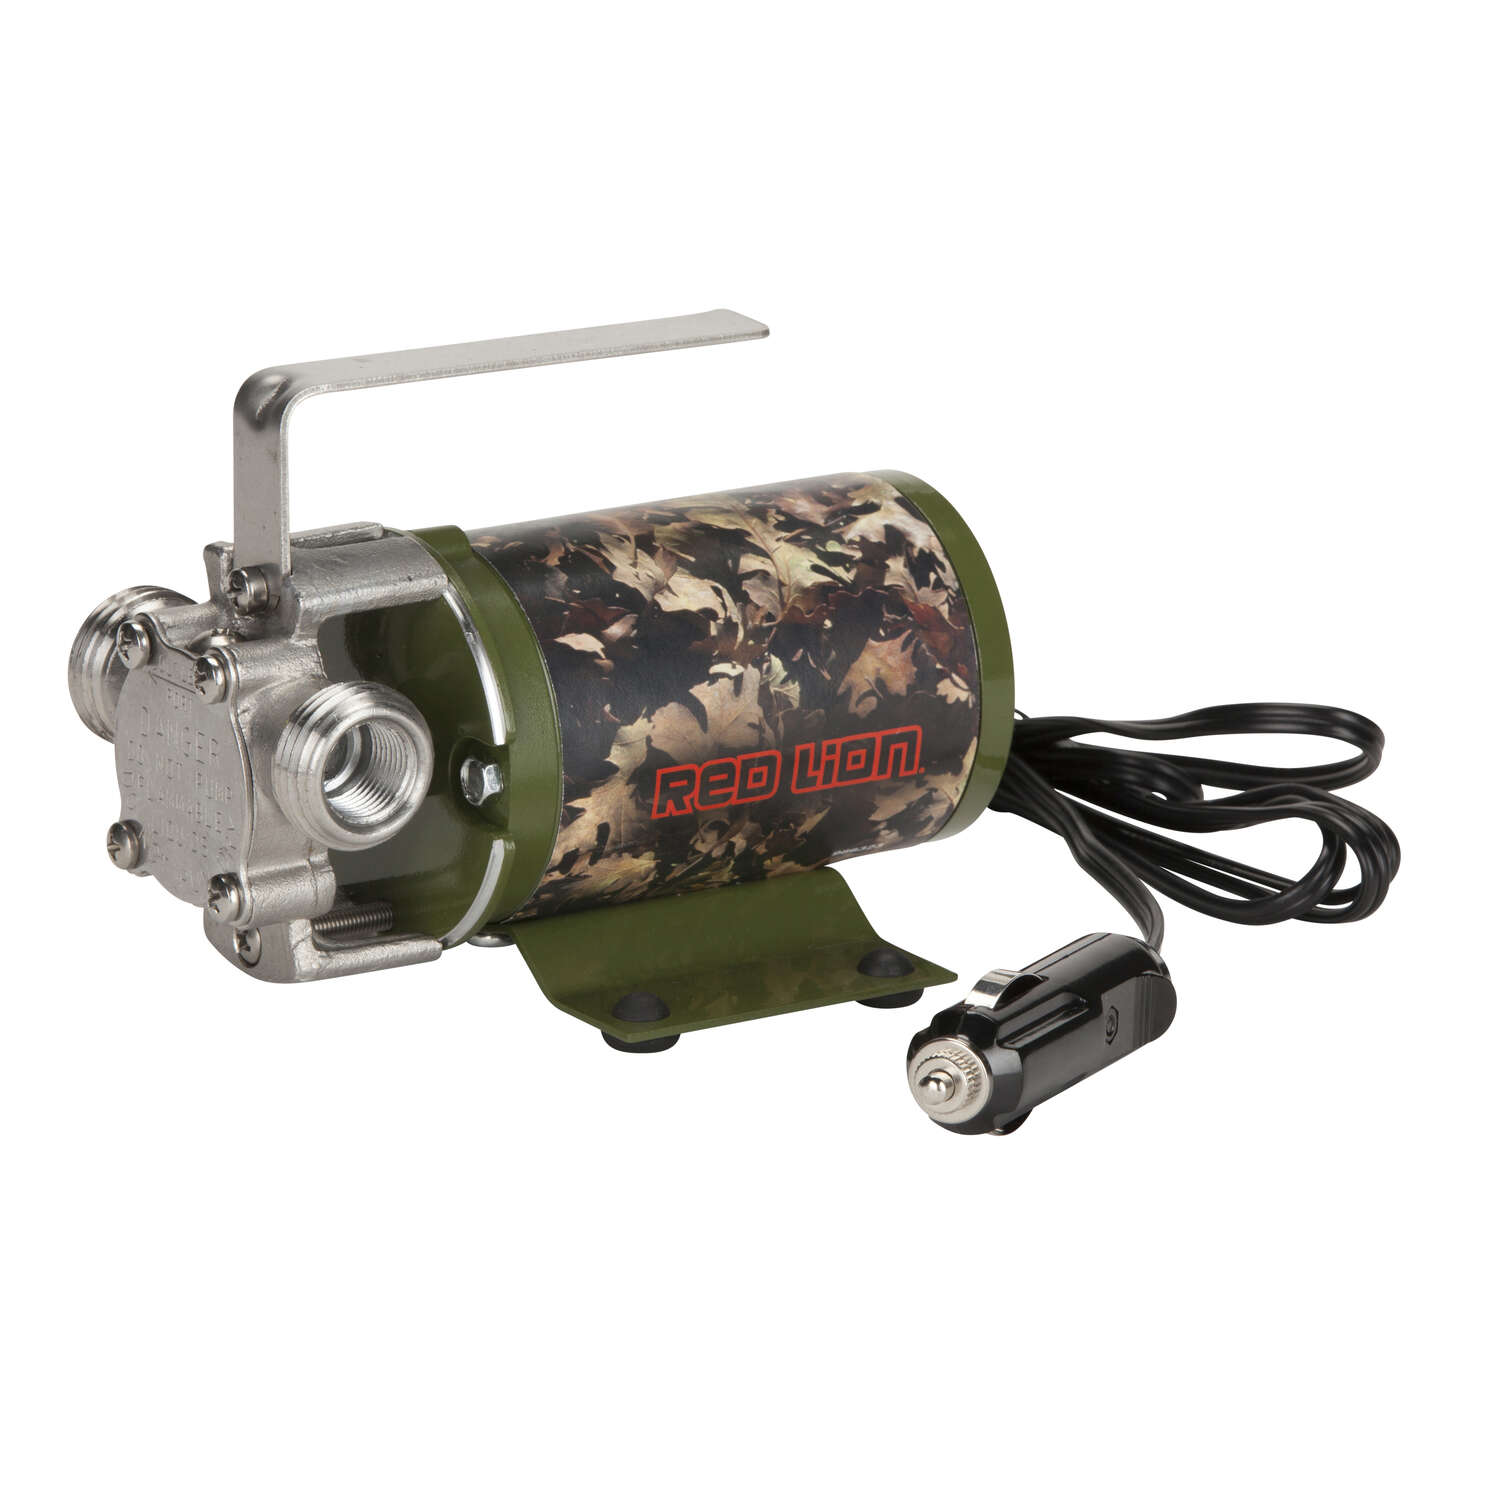 Red Lion  1/10 hp 300 gph Stainless Steel  Portable Water Pump